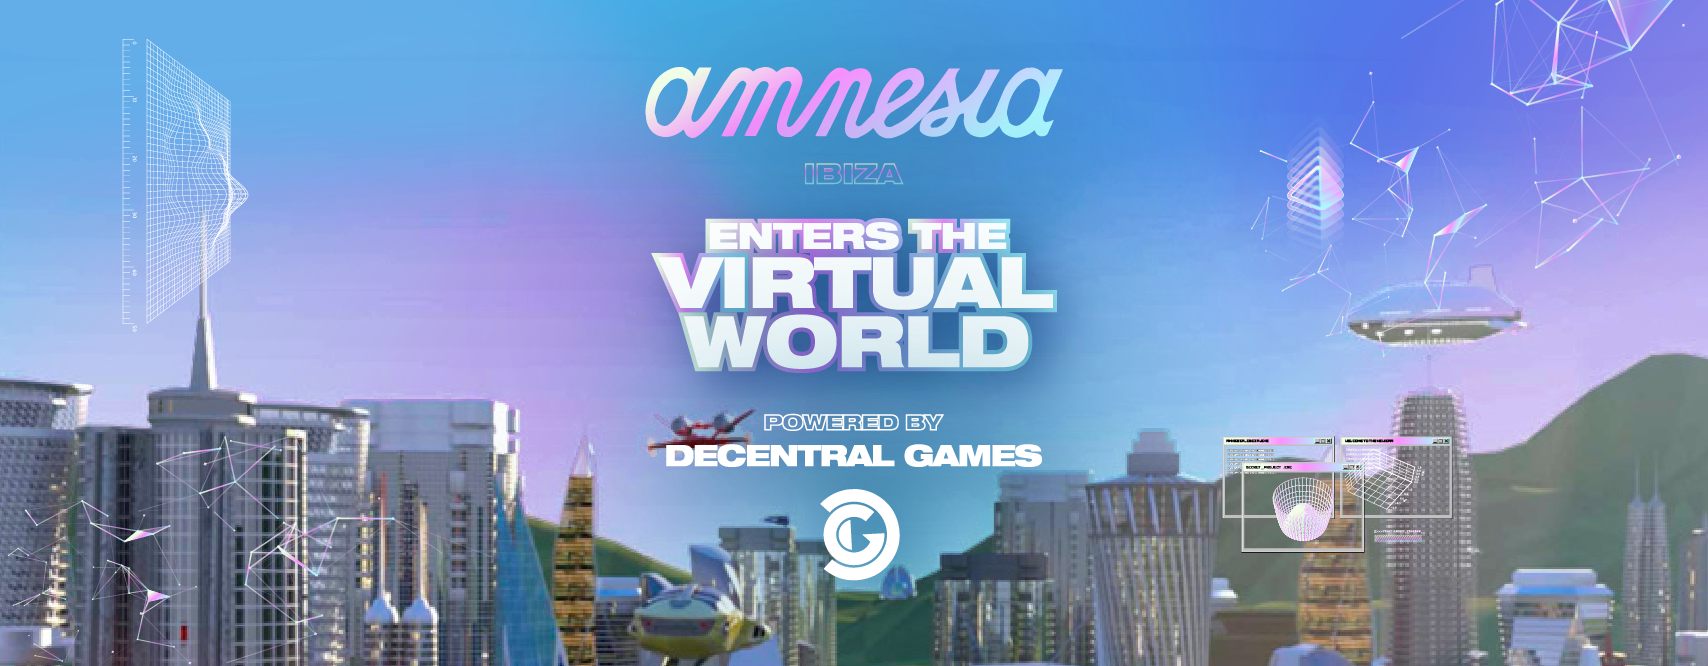 Decentral Games and Iconic brand Amnesia Ibiza bring clubbing to the  blockchain metaverse | by adamgdev | Decentral Games | Apr, 2021 | Medium